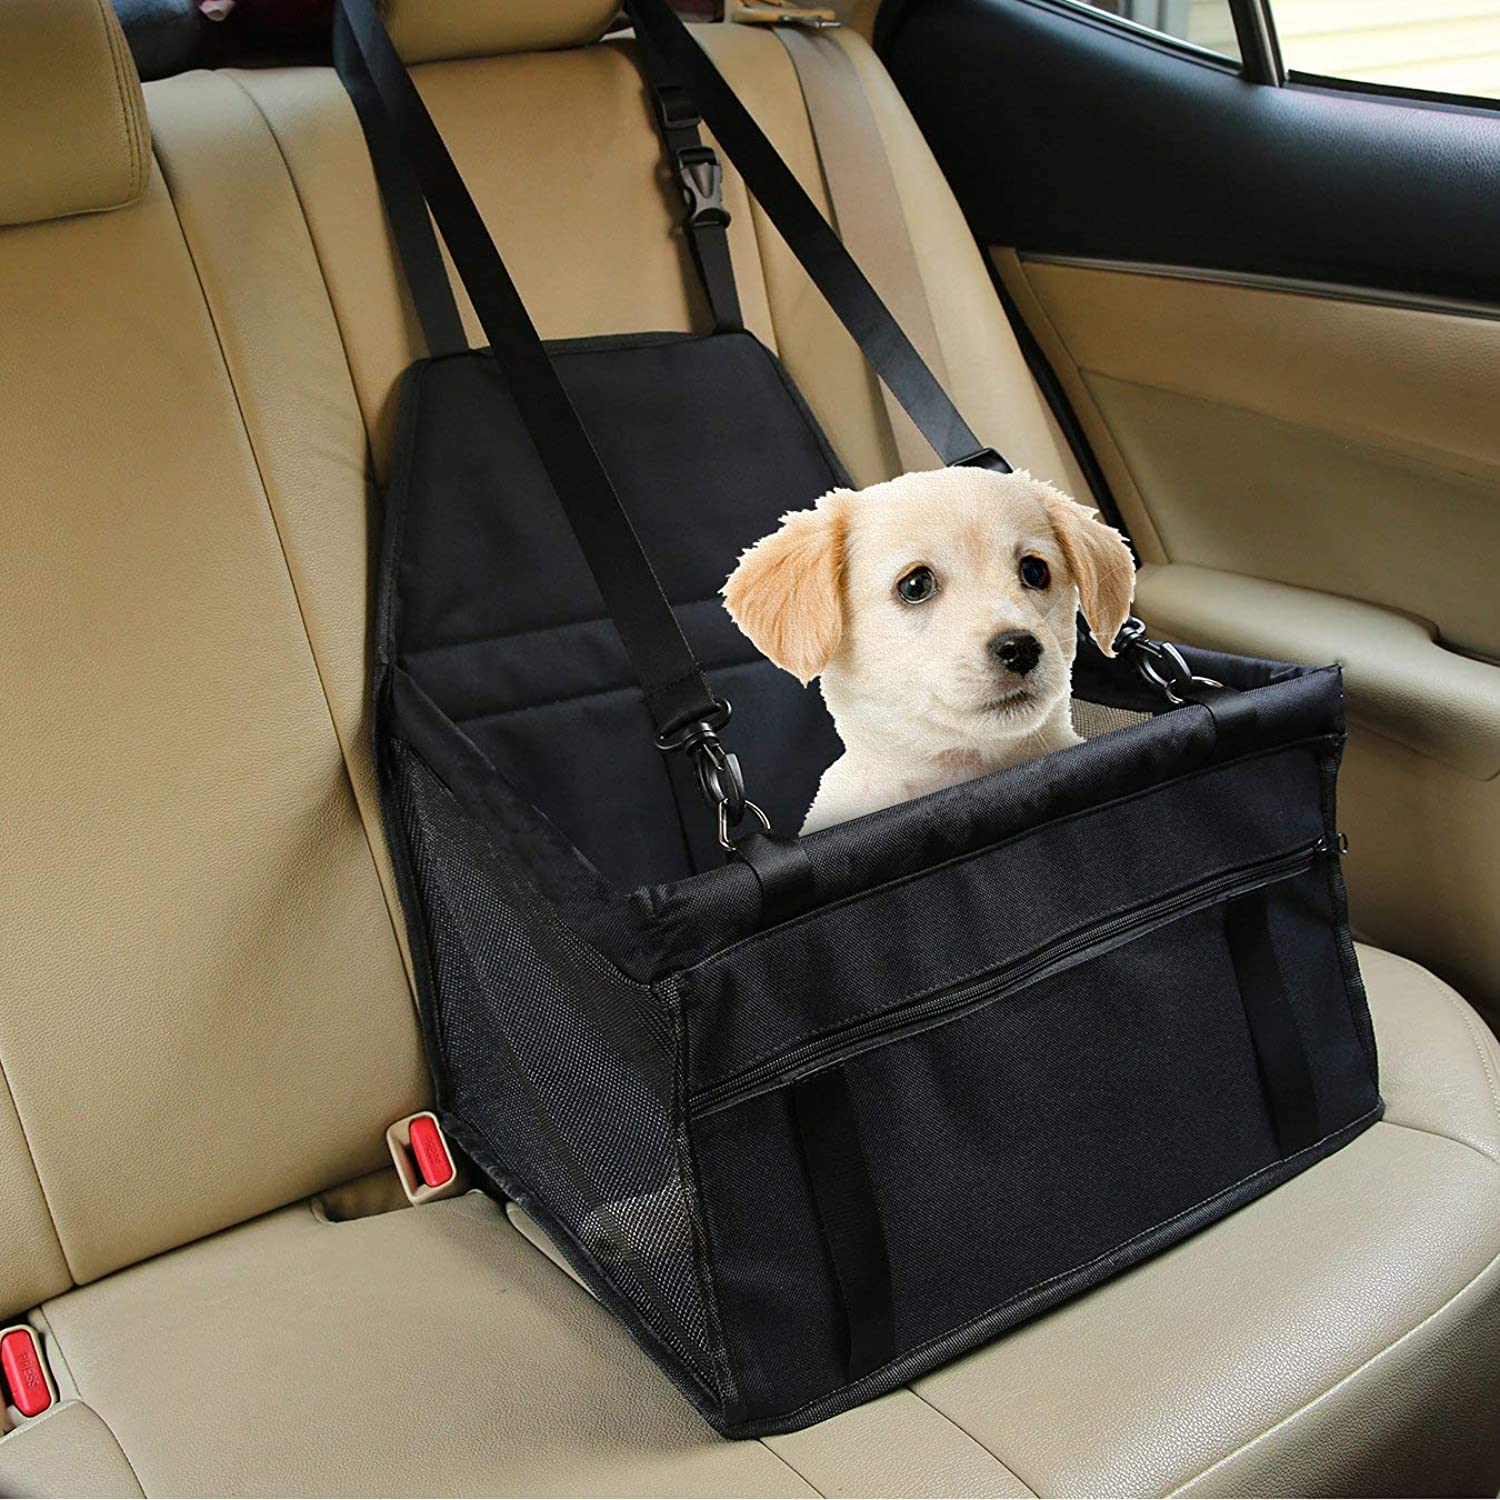 HAHY Pet Car Booster Seat Breathable Waterproof Pet Dog Car Supplies Travel Pet Car Carrier Bag Seat Predector Cover with Safety Leash Black